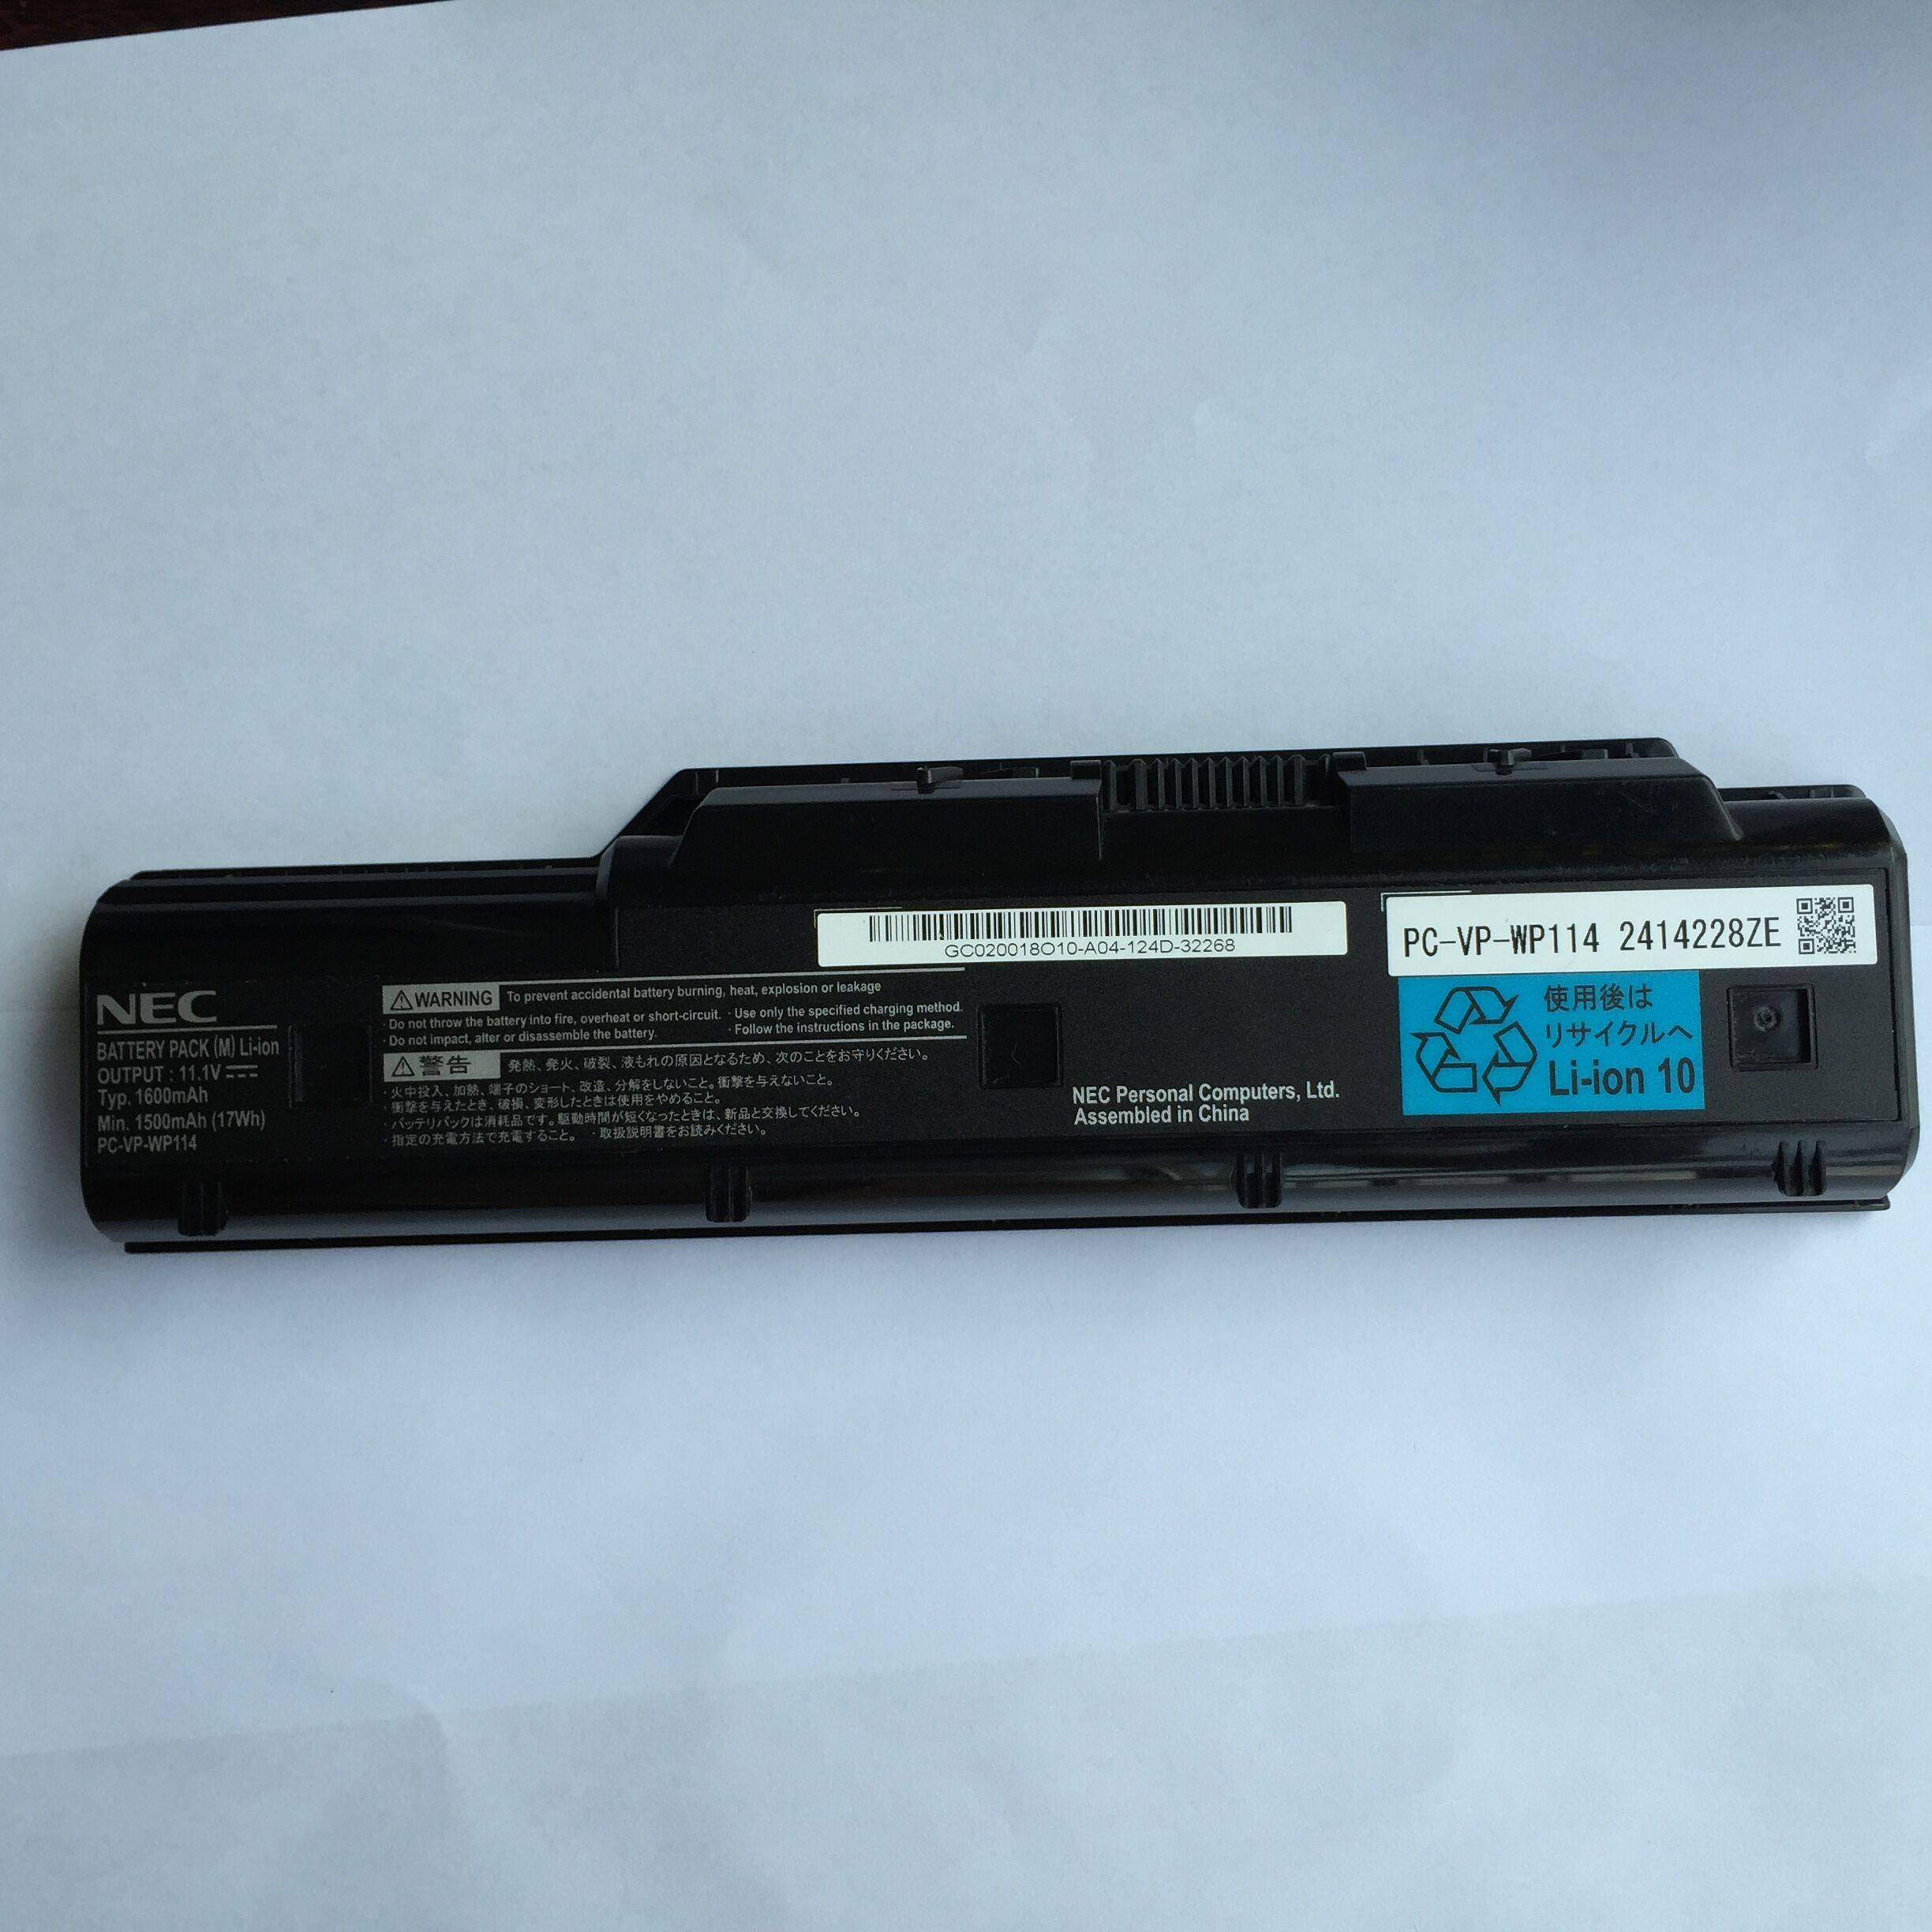 High Quality Cheap Price 1600mAh 3 Cell Laptop Battery for Nec PC-Vp-Wp114